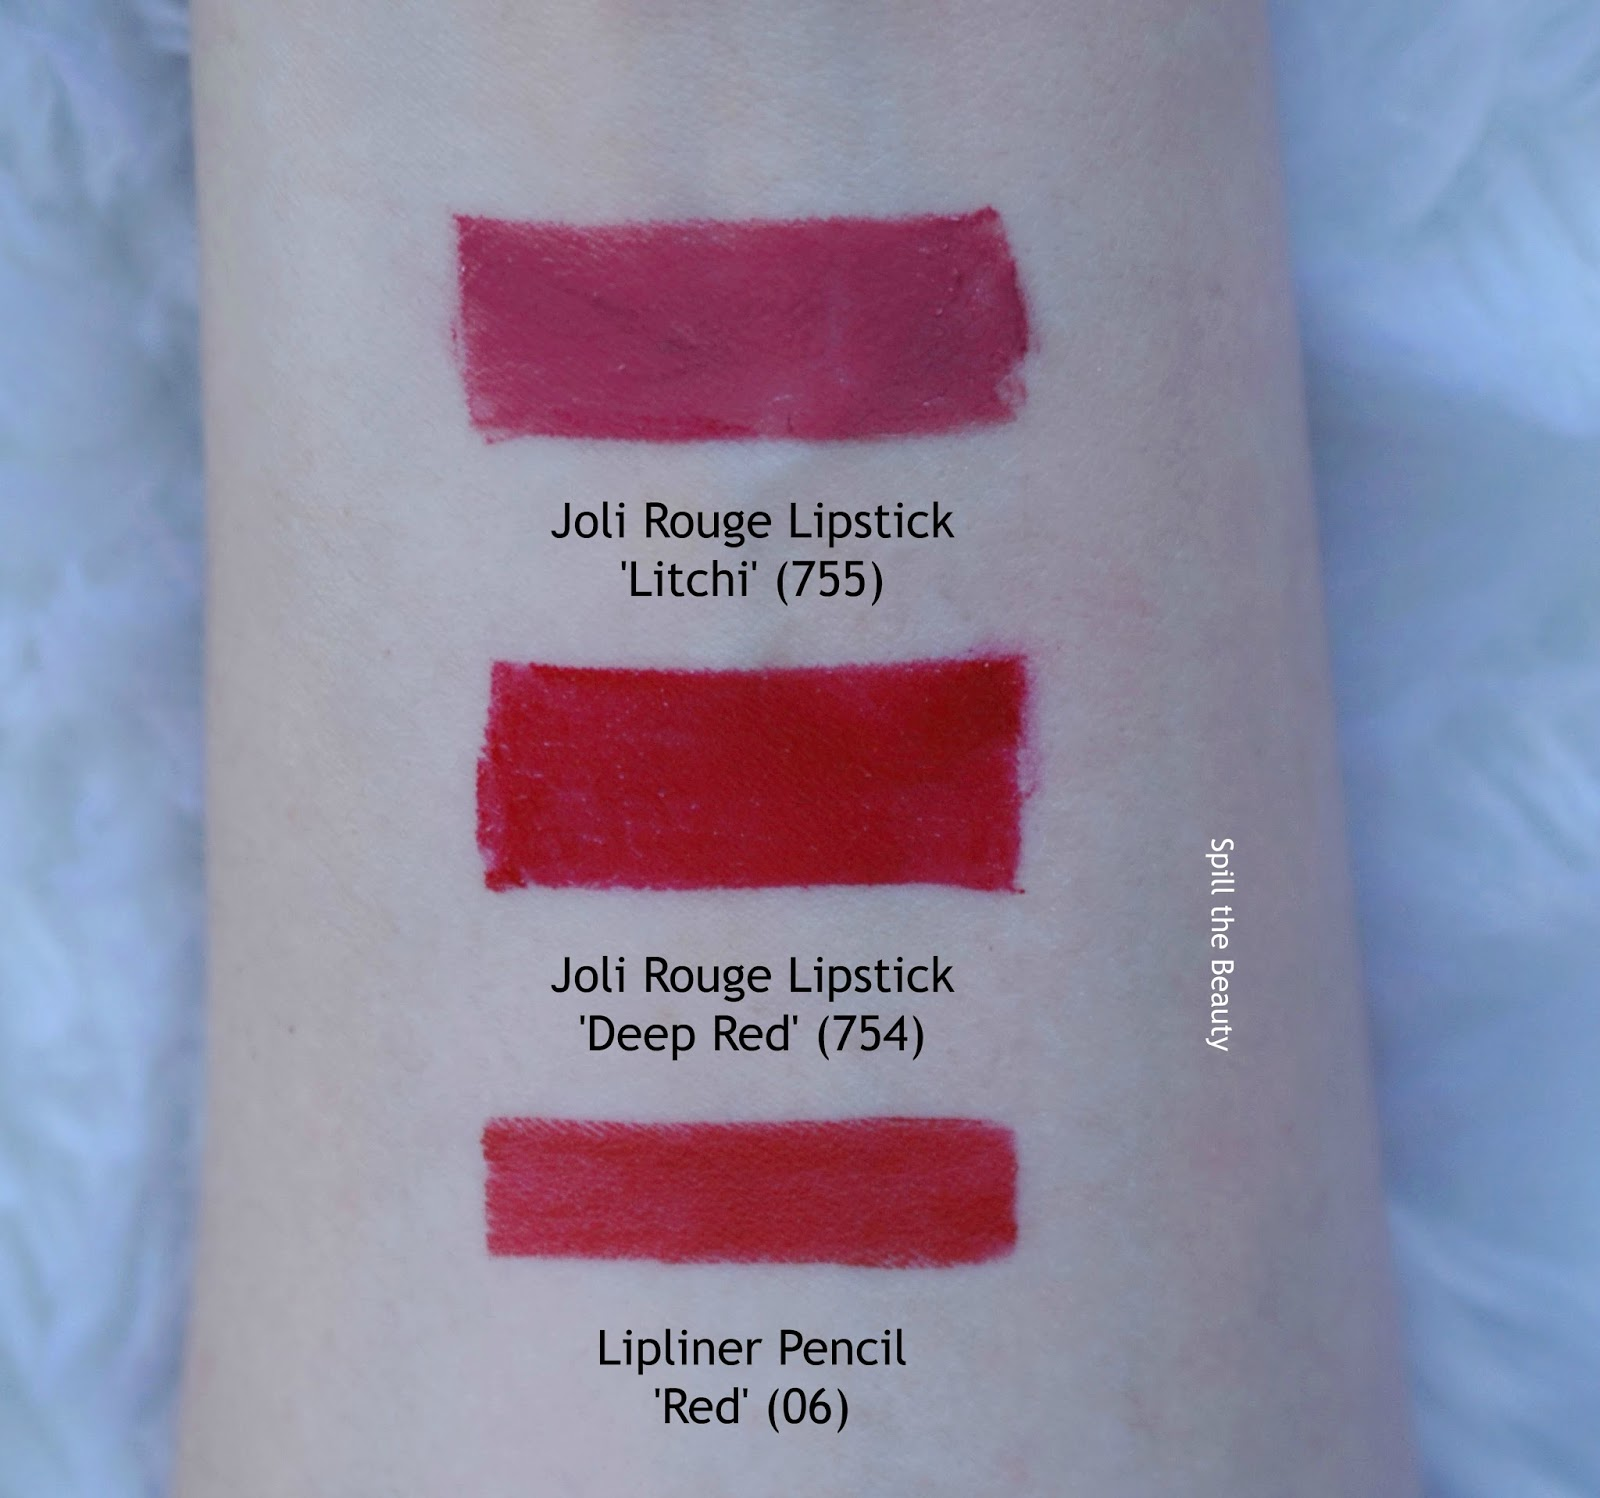 clarins fall 2017 review swatches joli rouge lipstick deep red litchi